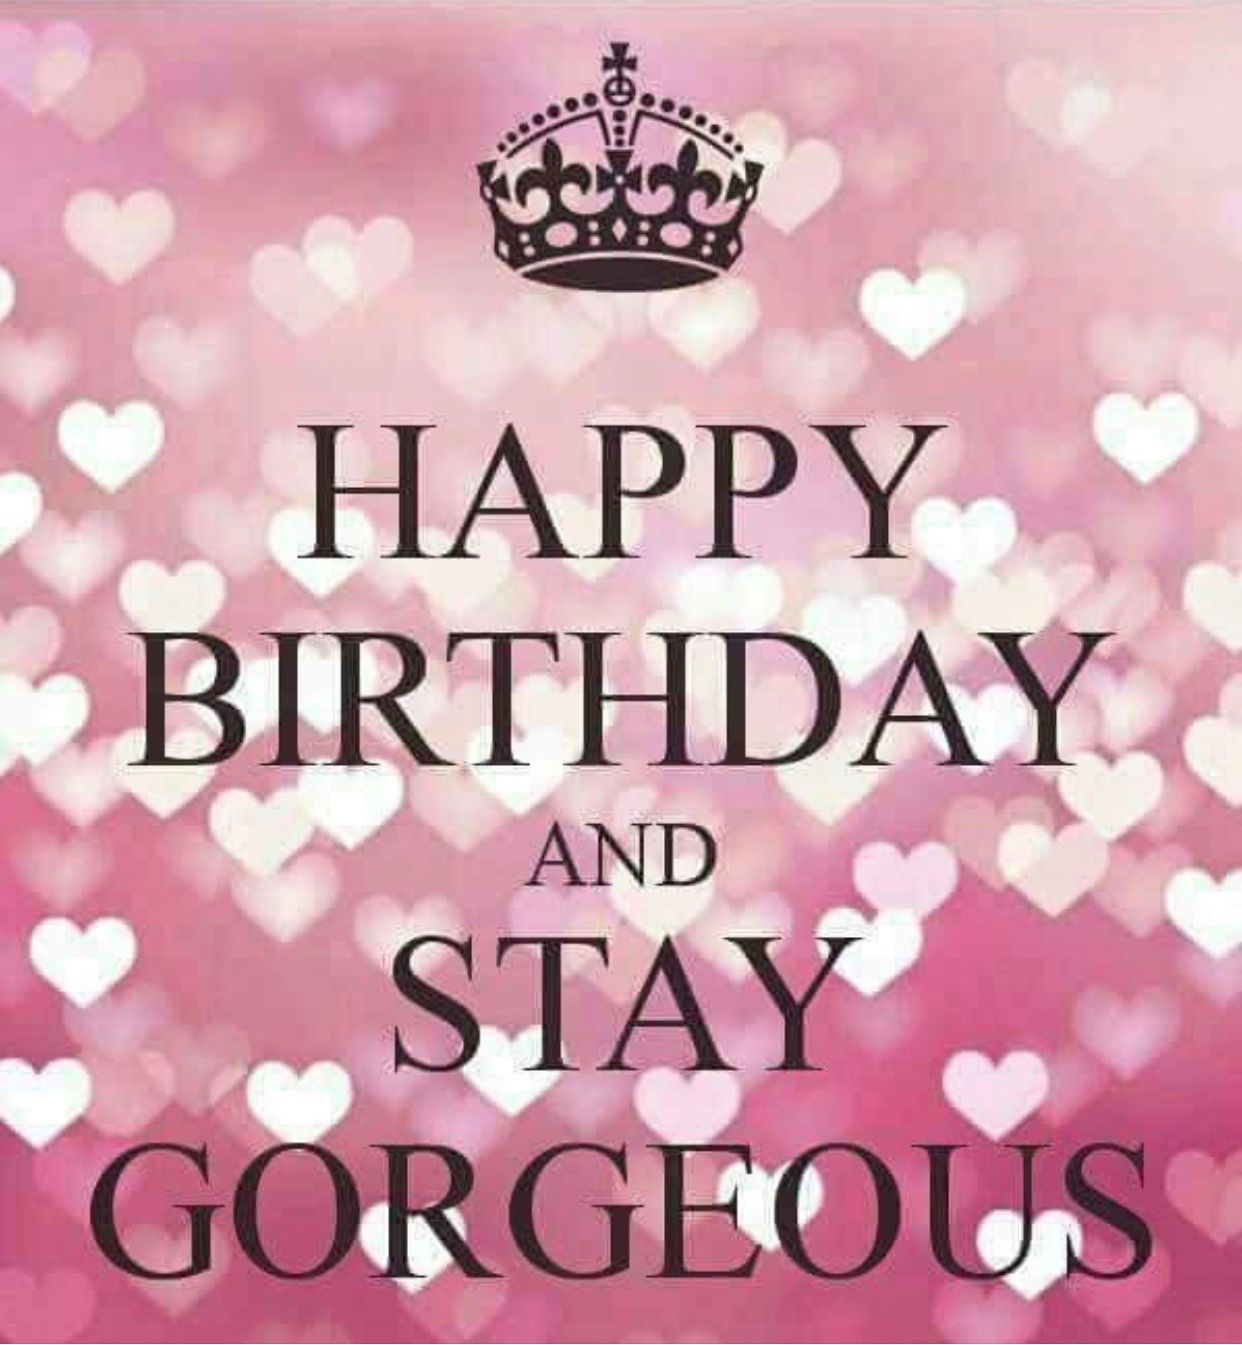 Pin by Dee Smith on Happy Birthday Happy birthday sister